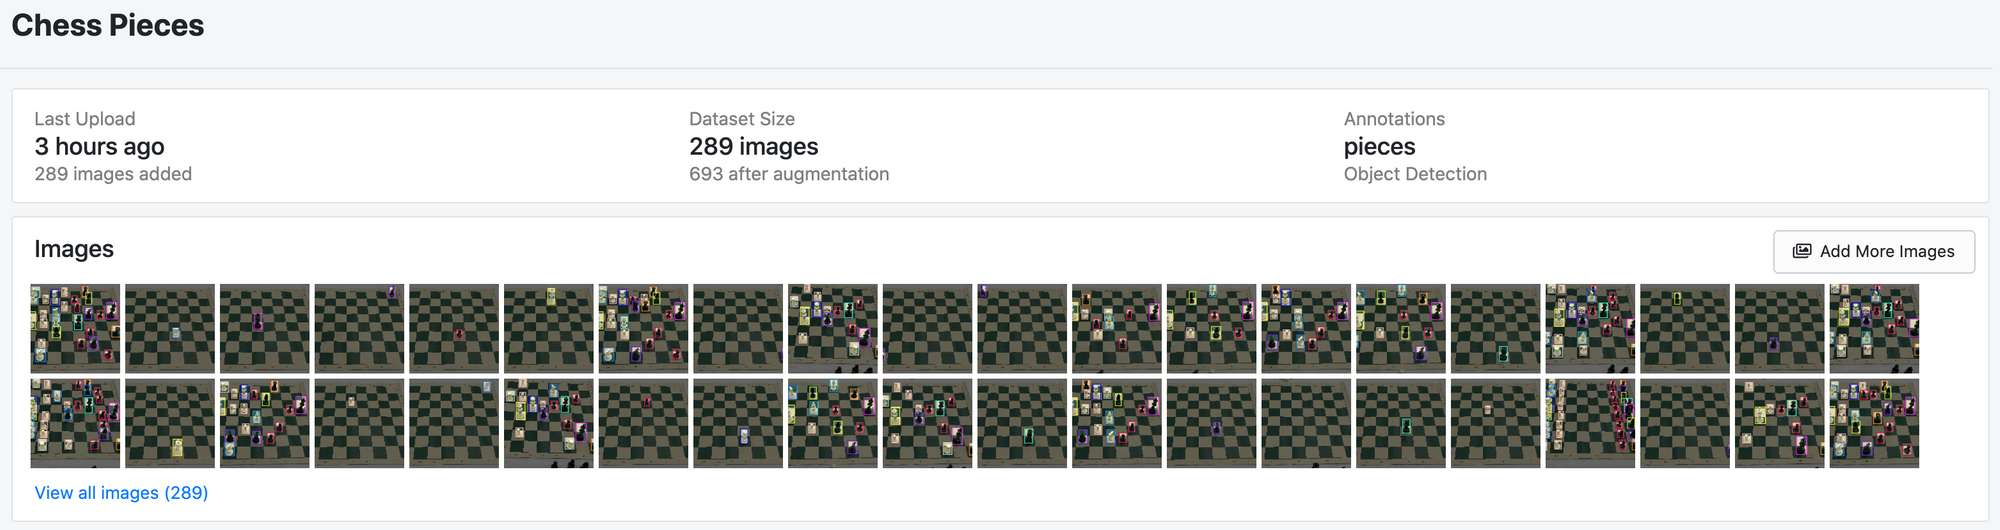 Add more images to a dataset in Roboflow.